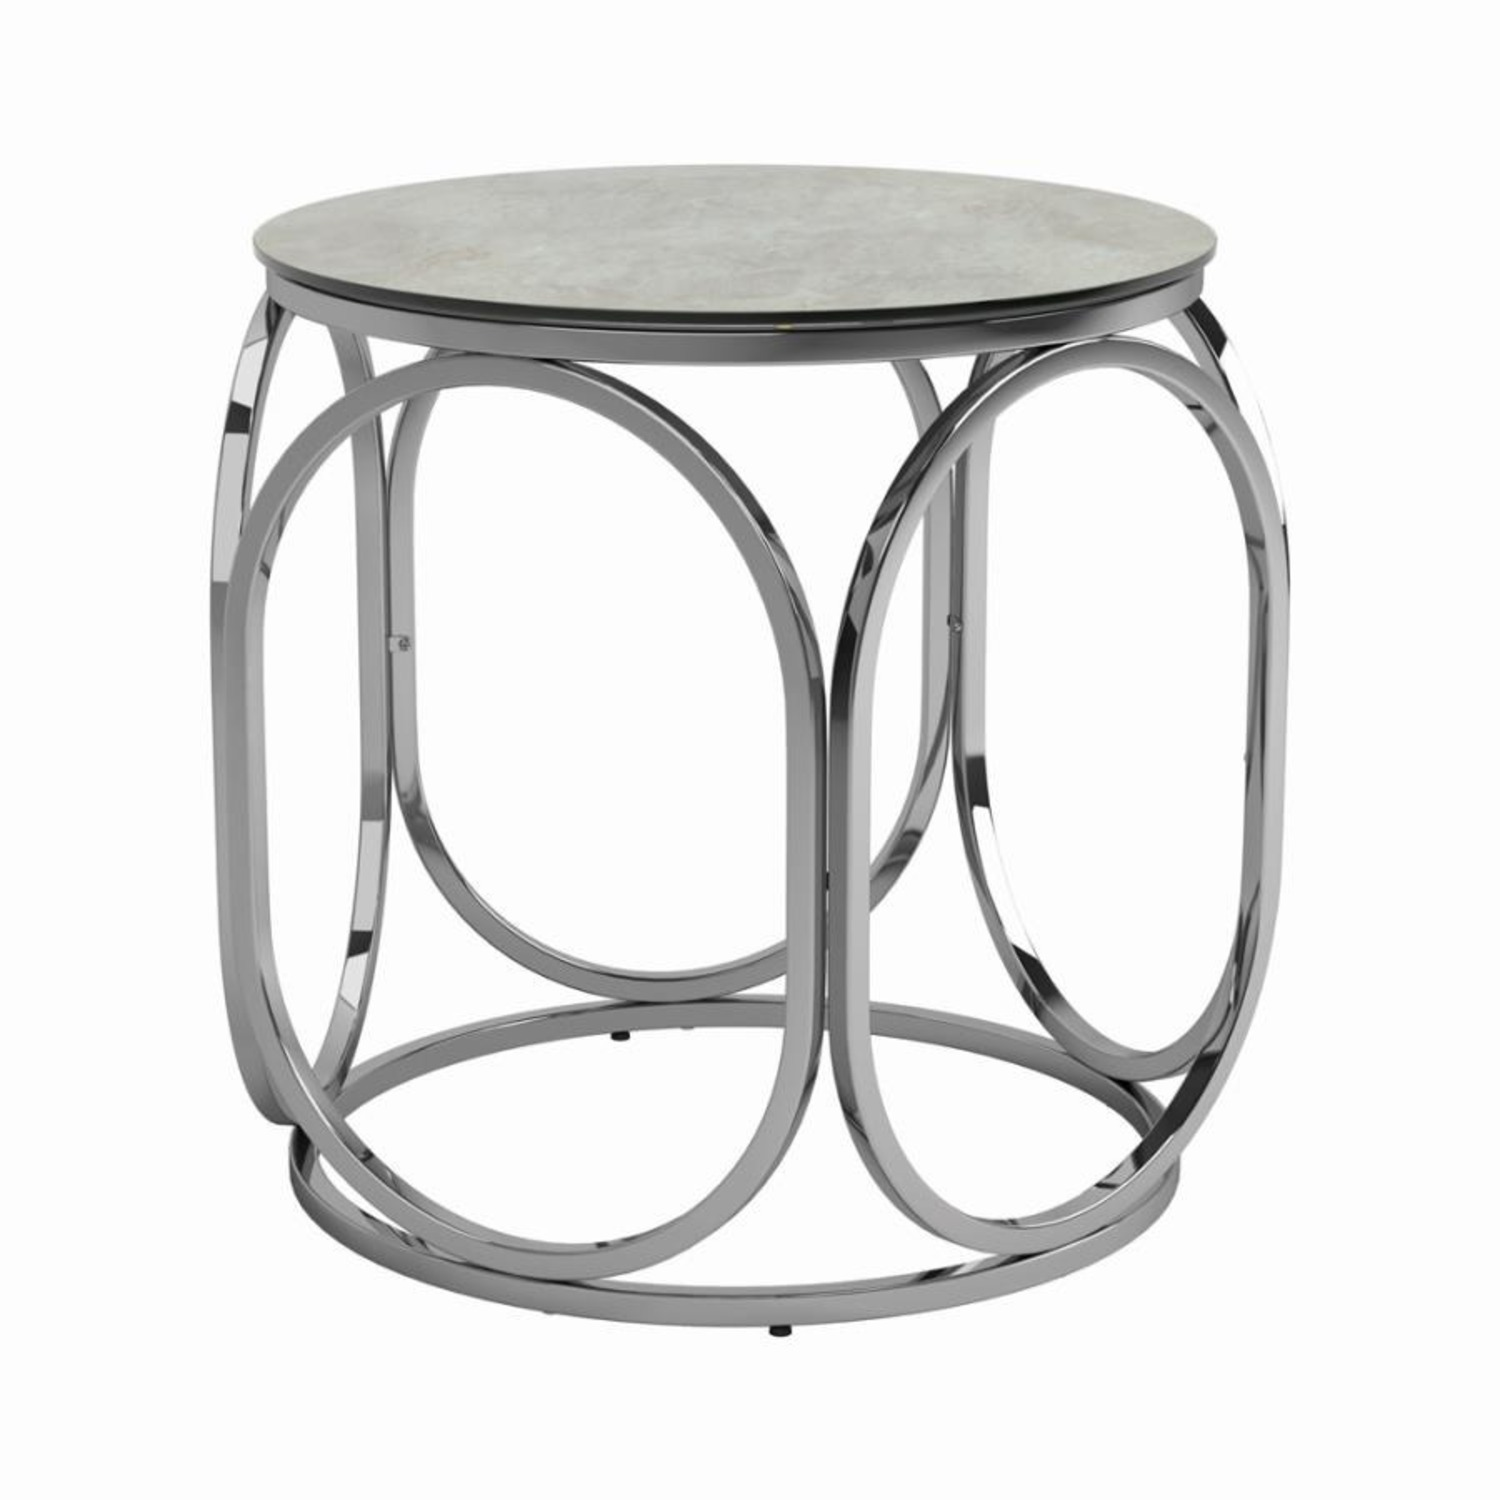 Circular Shapes End Table In Chrome Metal Finish - image-0